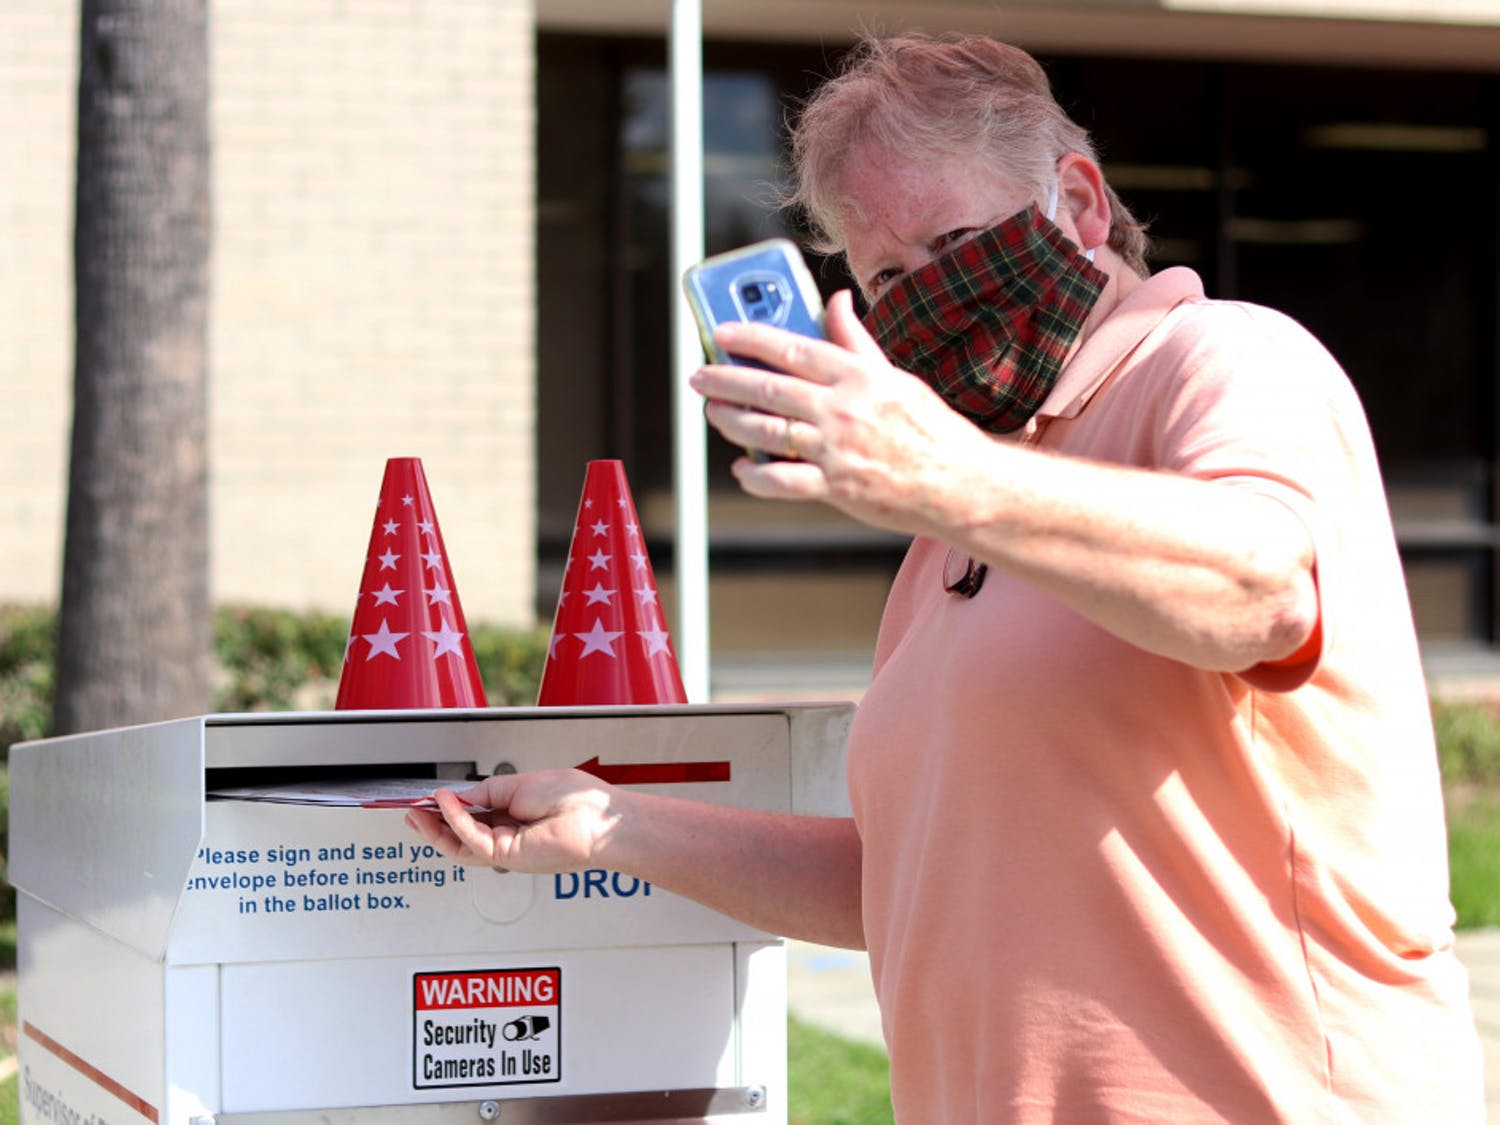 Linda Spurny takes a selfie with her ballot as she drops it off in front of the Alachua County Supervisor of Elections Office on Thursday, Oct. 15, 2020. She said she took the photo to insure it is counted. (Lauren Witte/Alligator Staff)